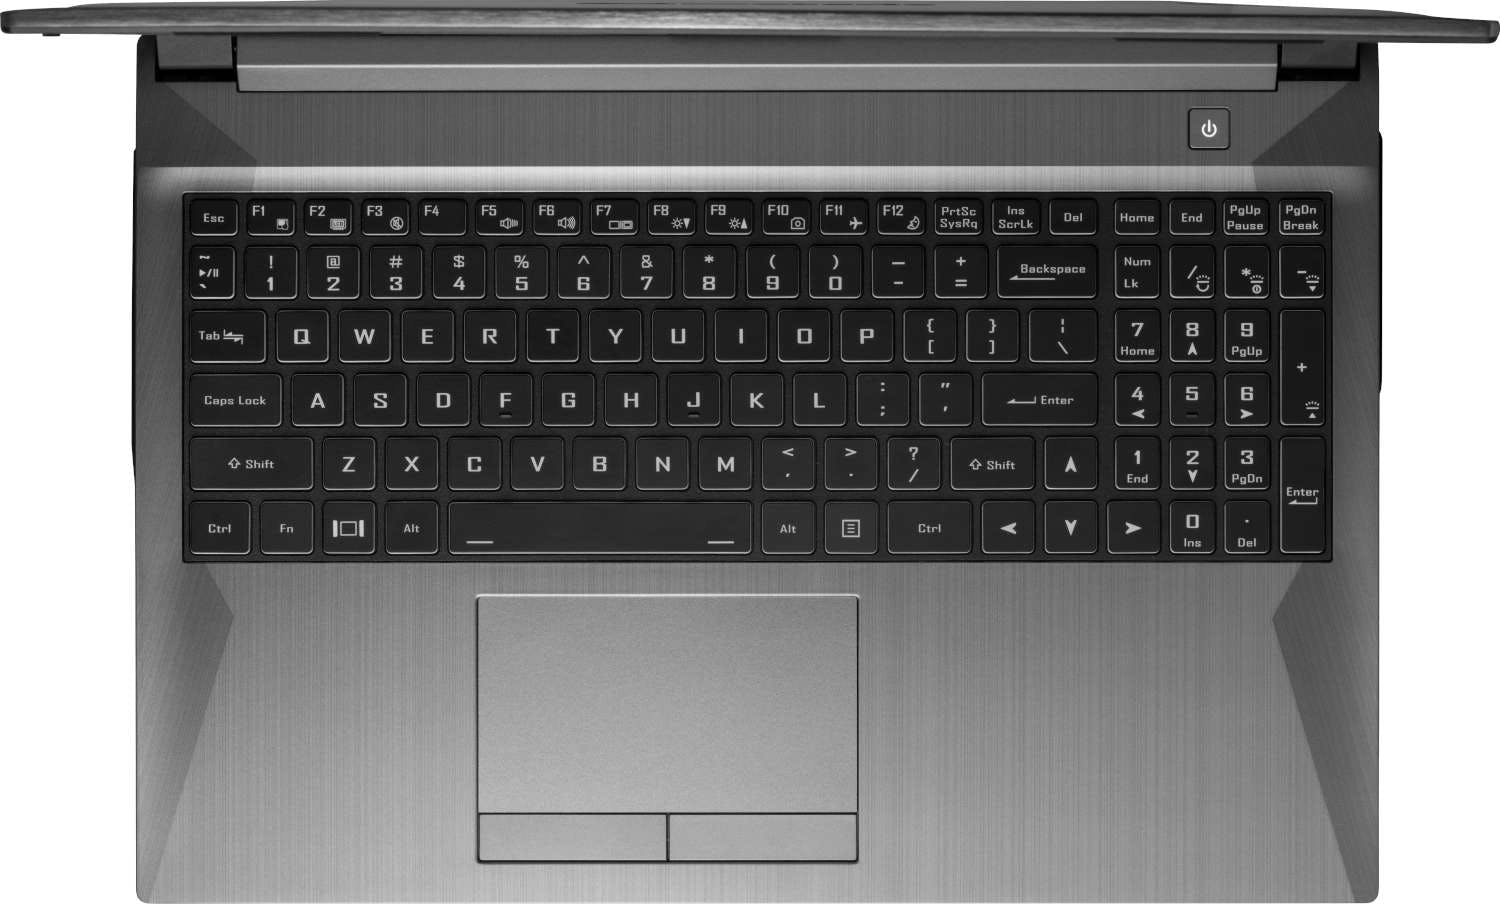 A top-down view of the Gazelle laptop's tactile numeric keyboard.